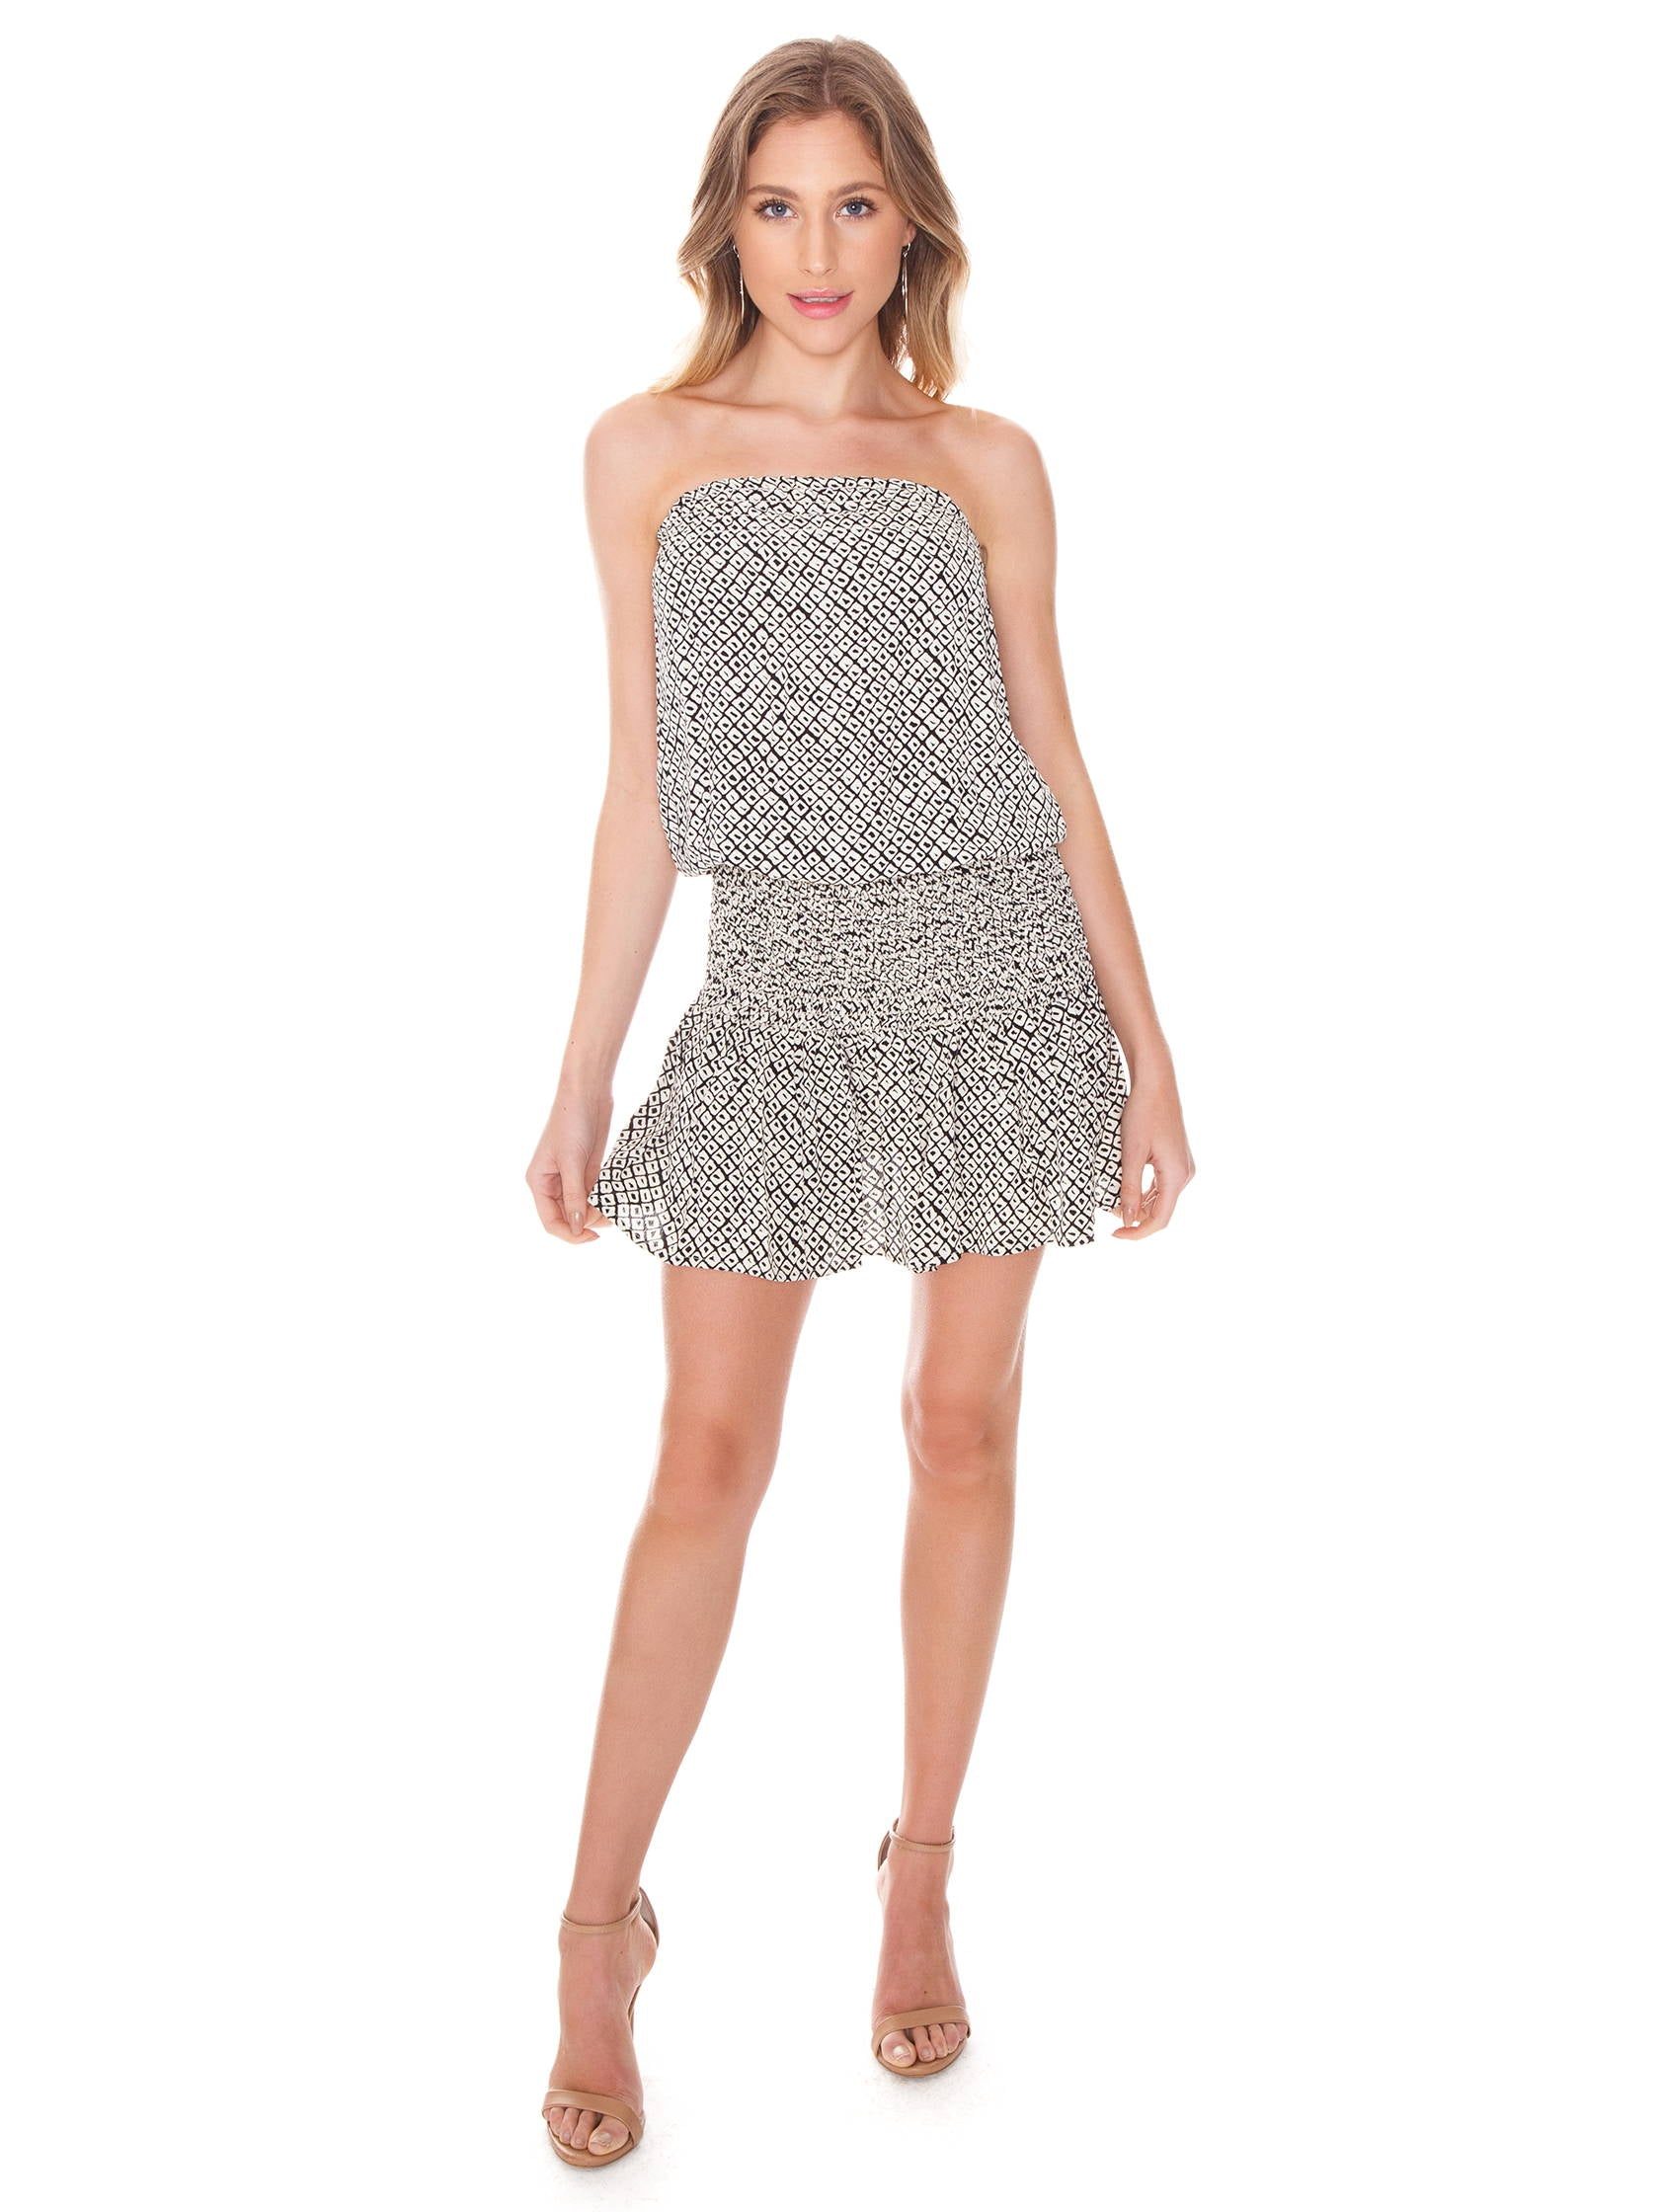 Girl outfit in a dress rental from Blue Life called Good Karma Mini Dress